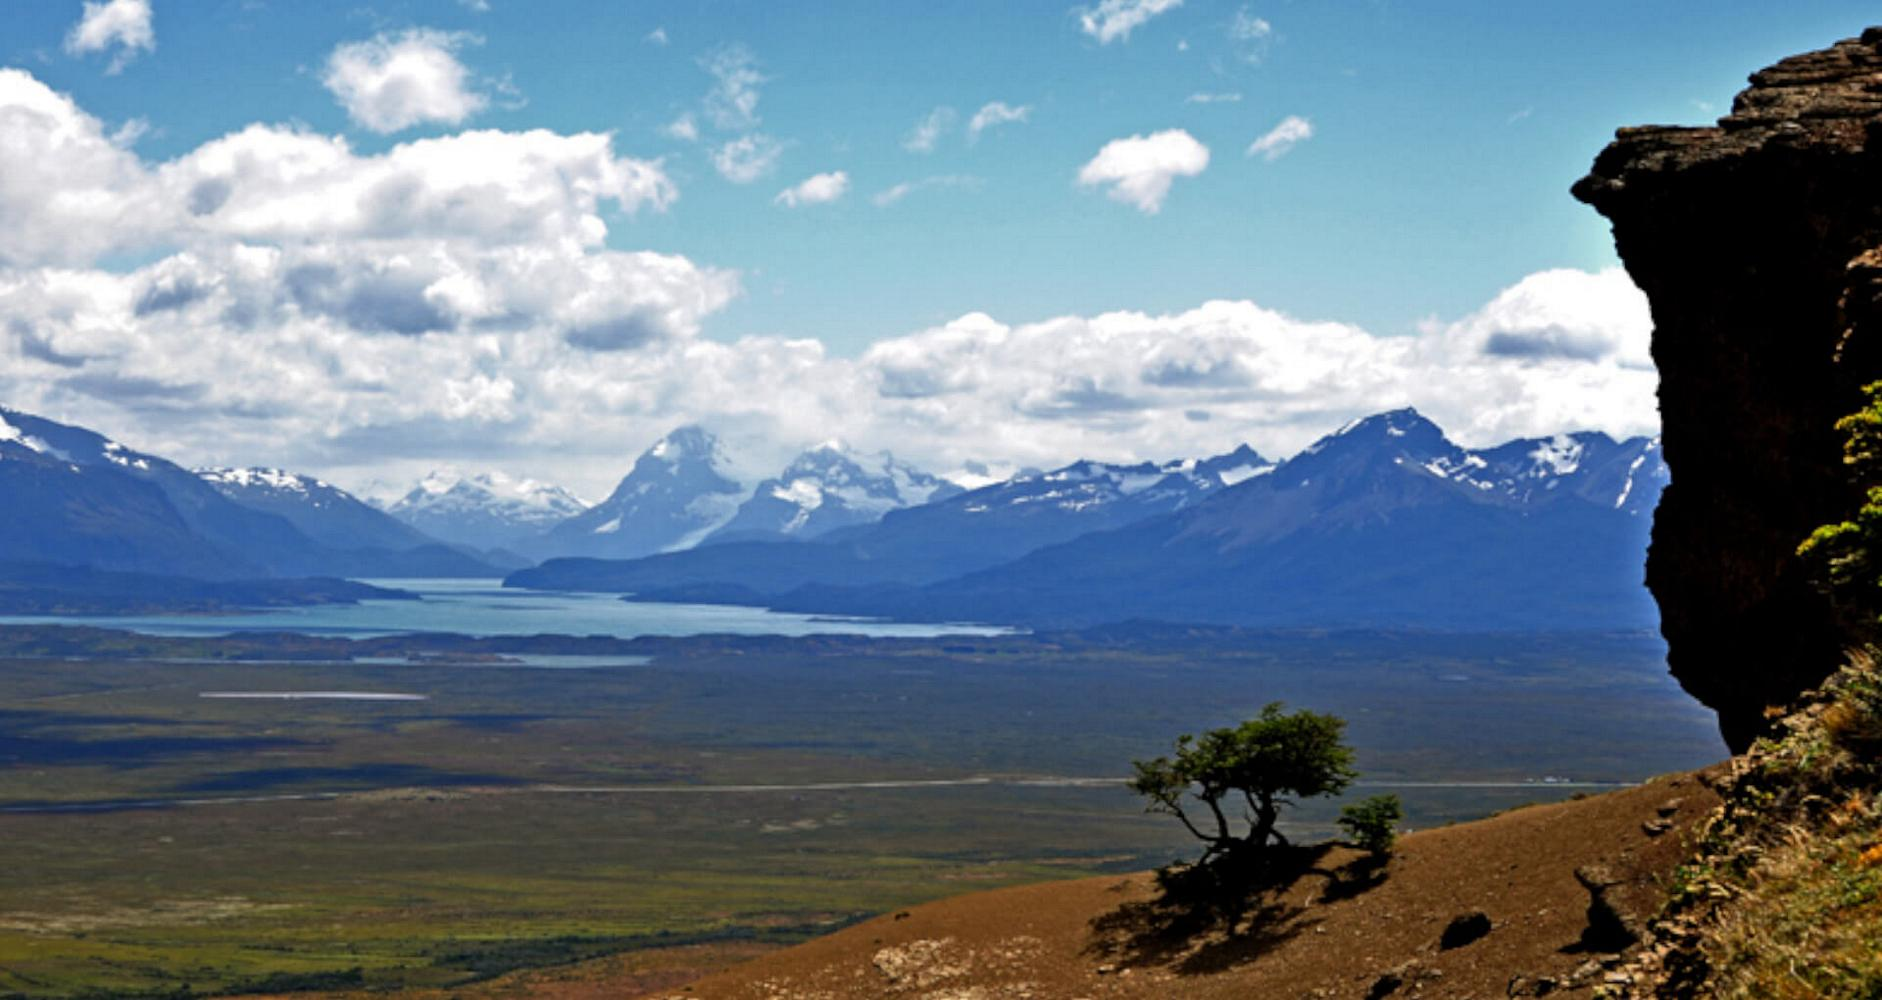 Puerto Natales Condors Nest viewpoint, Chile